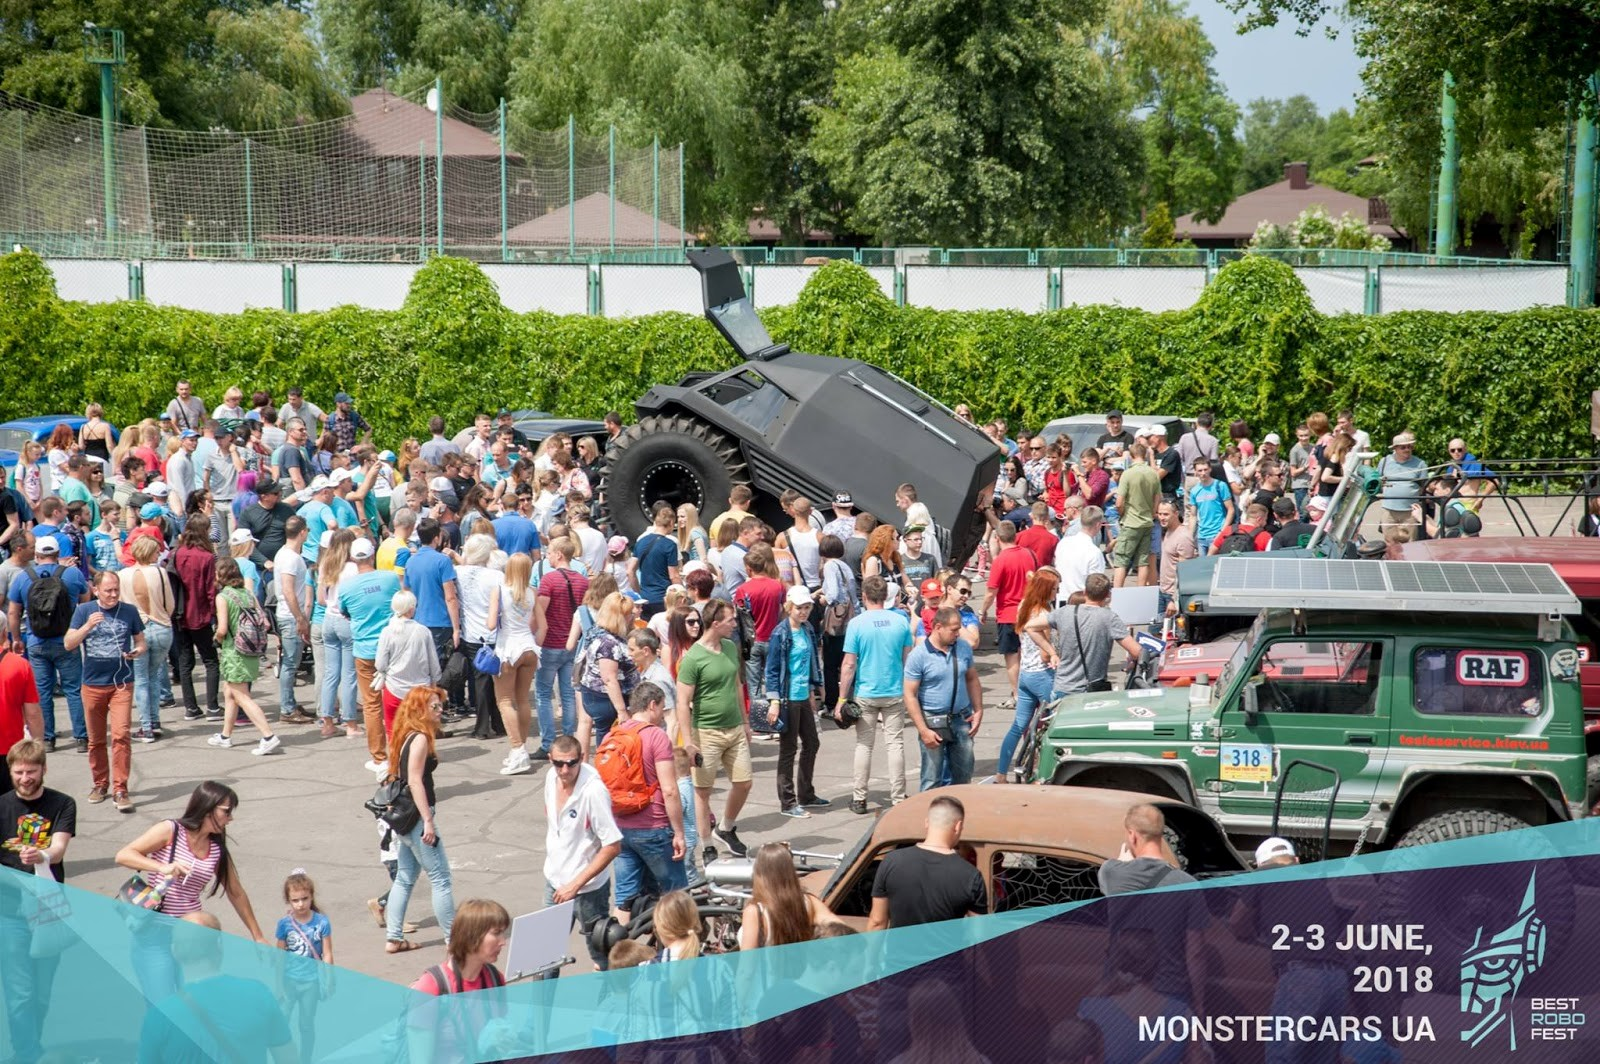 Monster Cars Show at Max Polyakov's BestRoboFest 2018